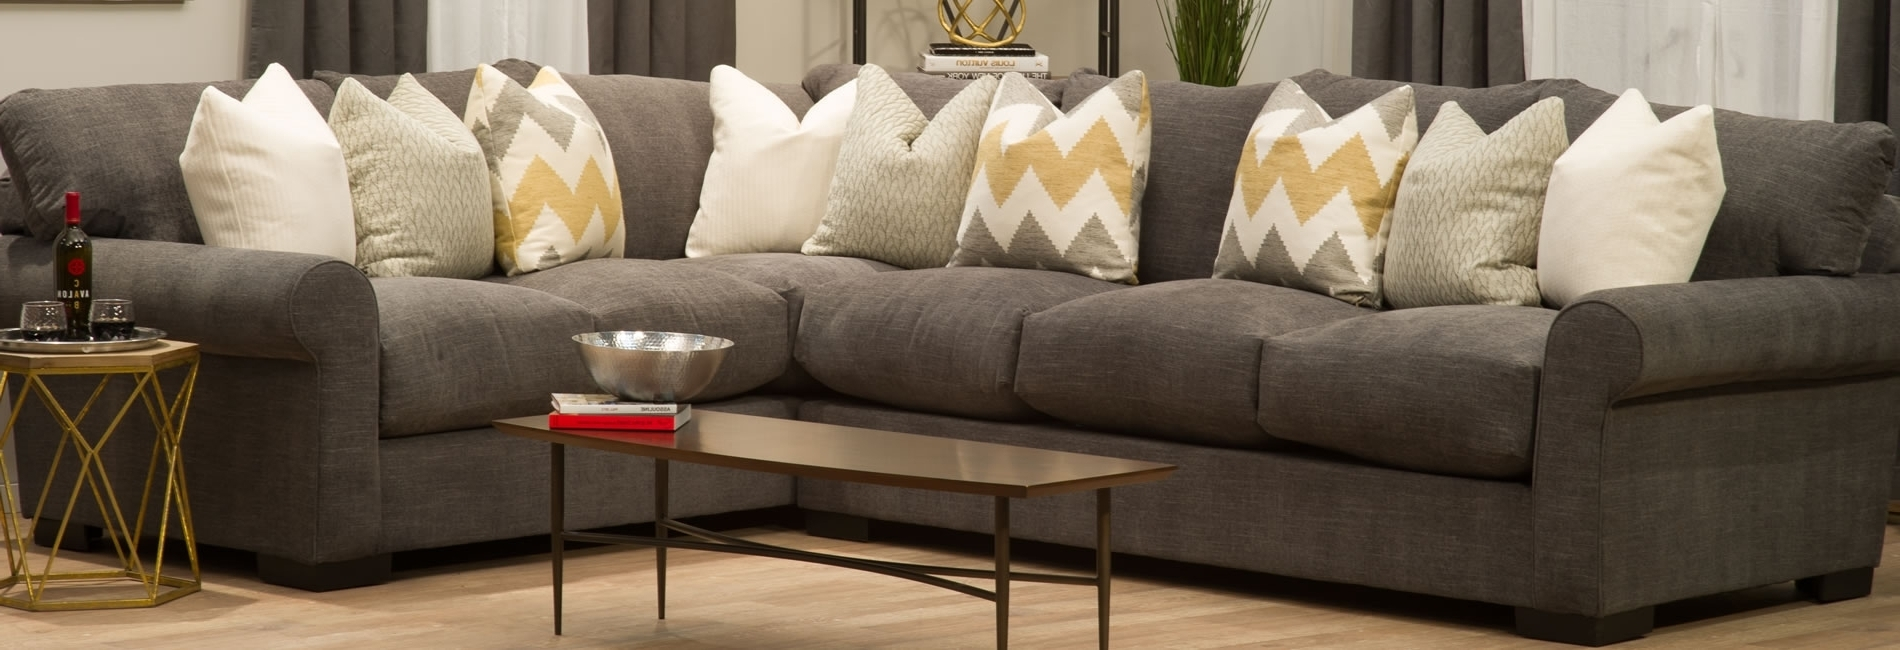 Famous Collection Sectional Sofas Atlanta Ga – Buildsimplehome For Sectional Sofas In Atlanta (View 4 of 20)